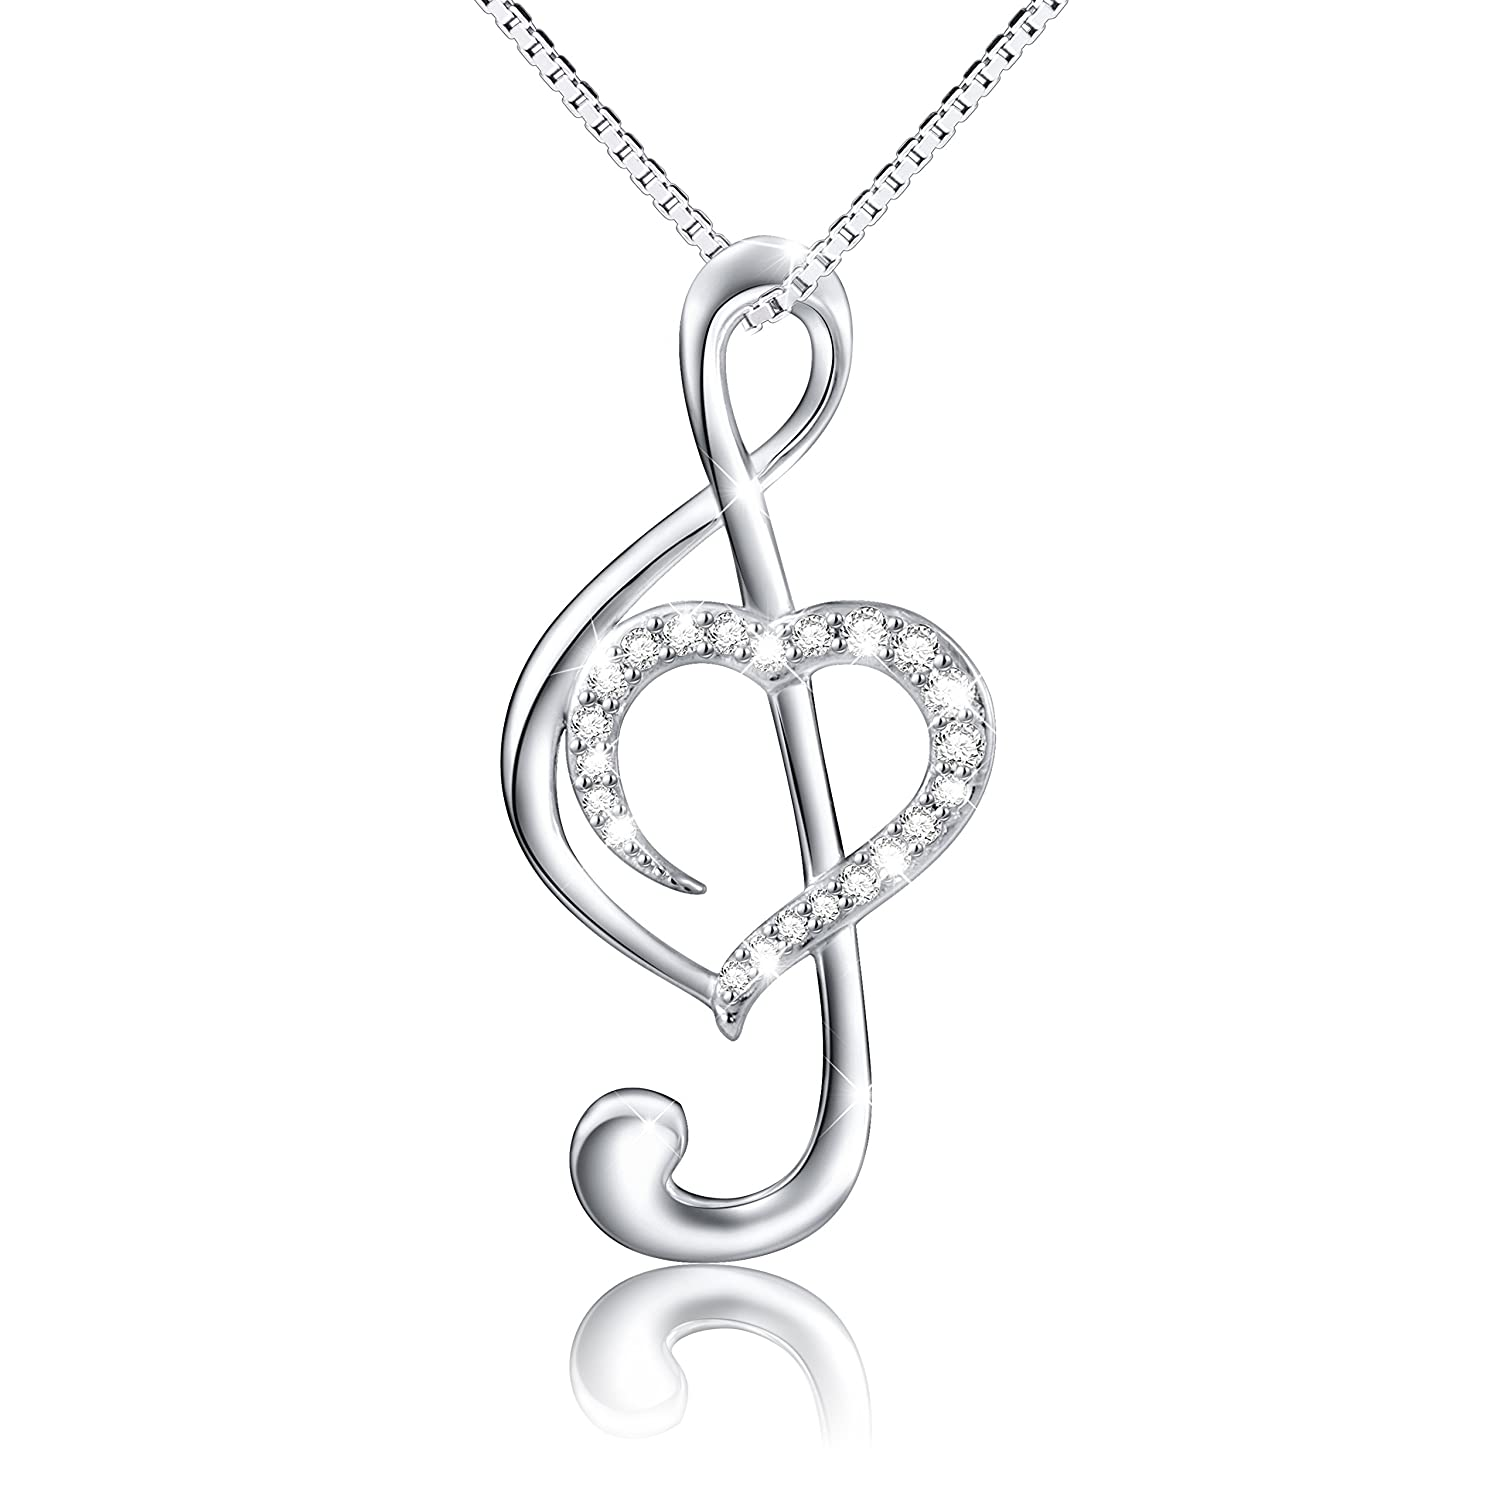 charm girlfriend necklaces note for romantic musical music female women pendants notation pendant pin gift